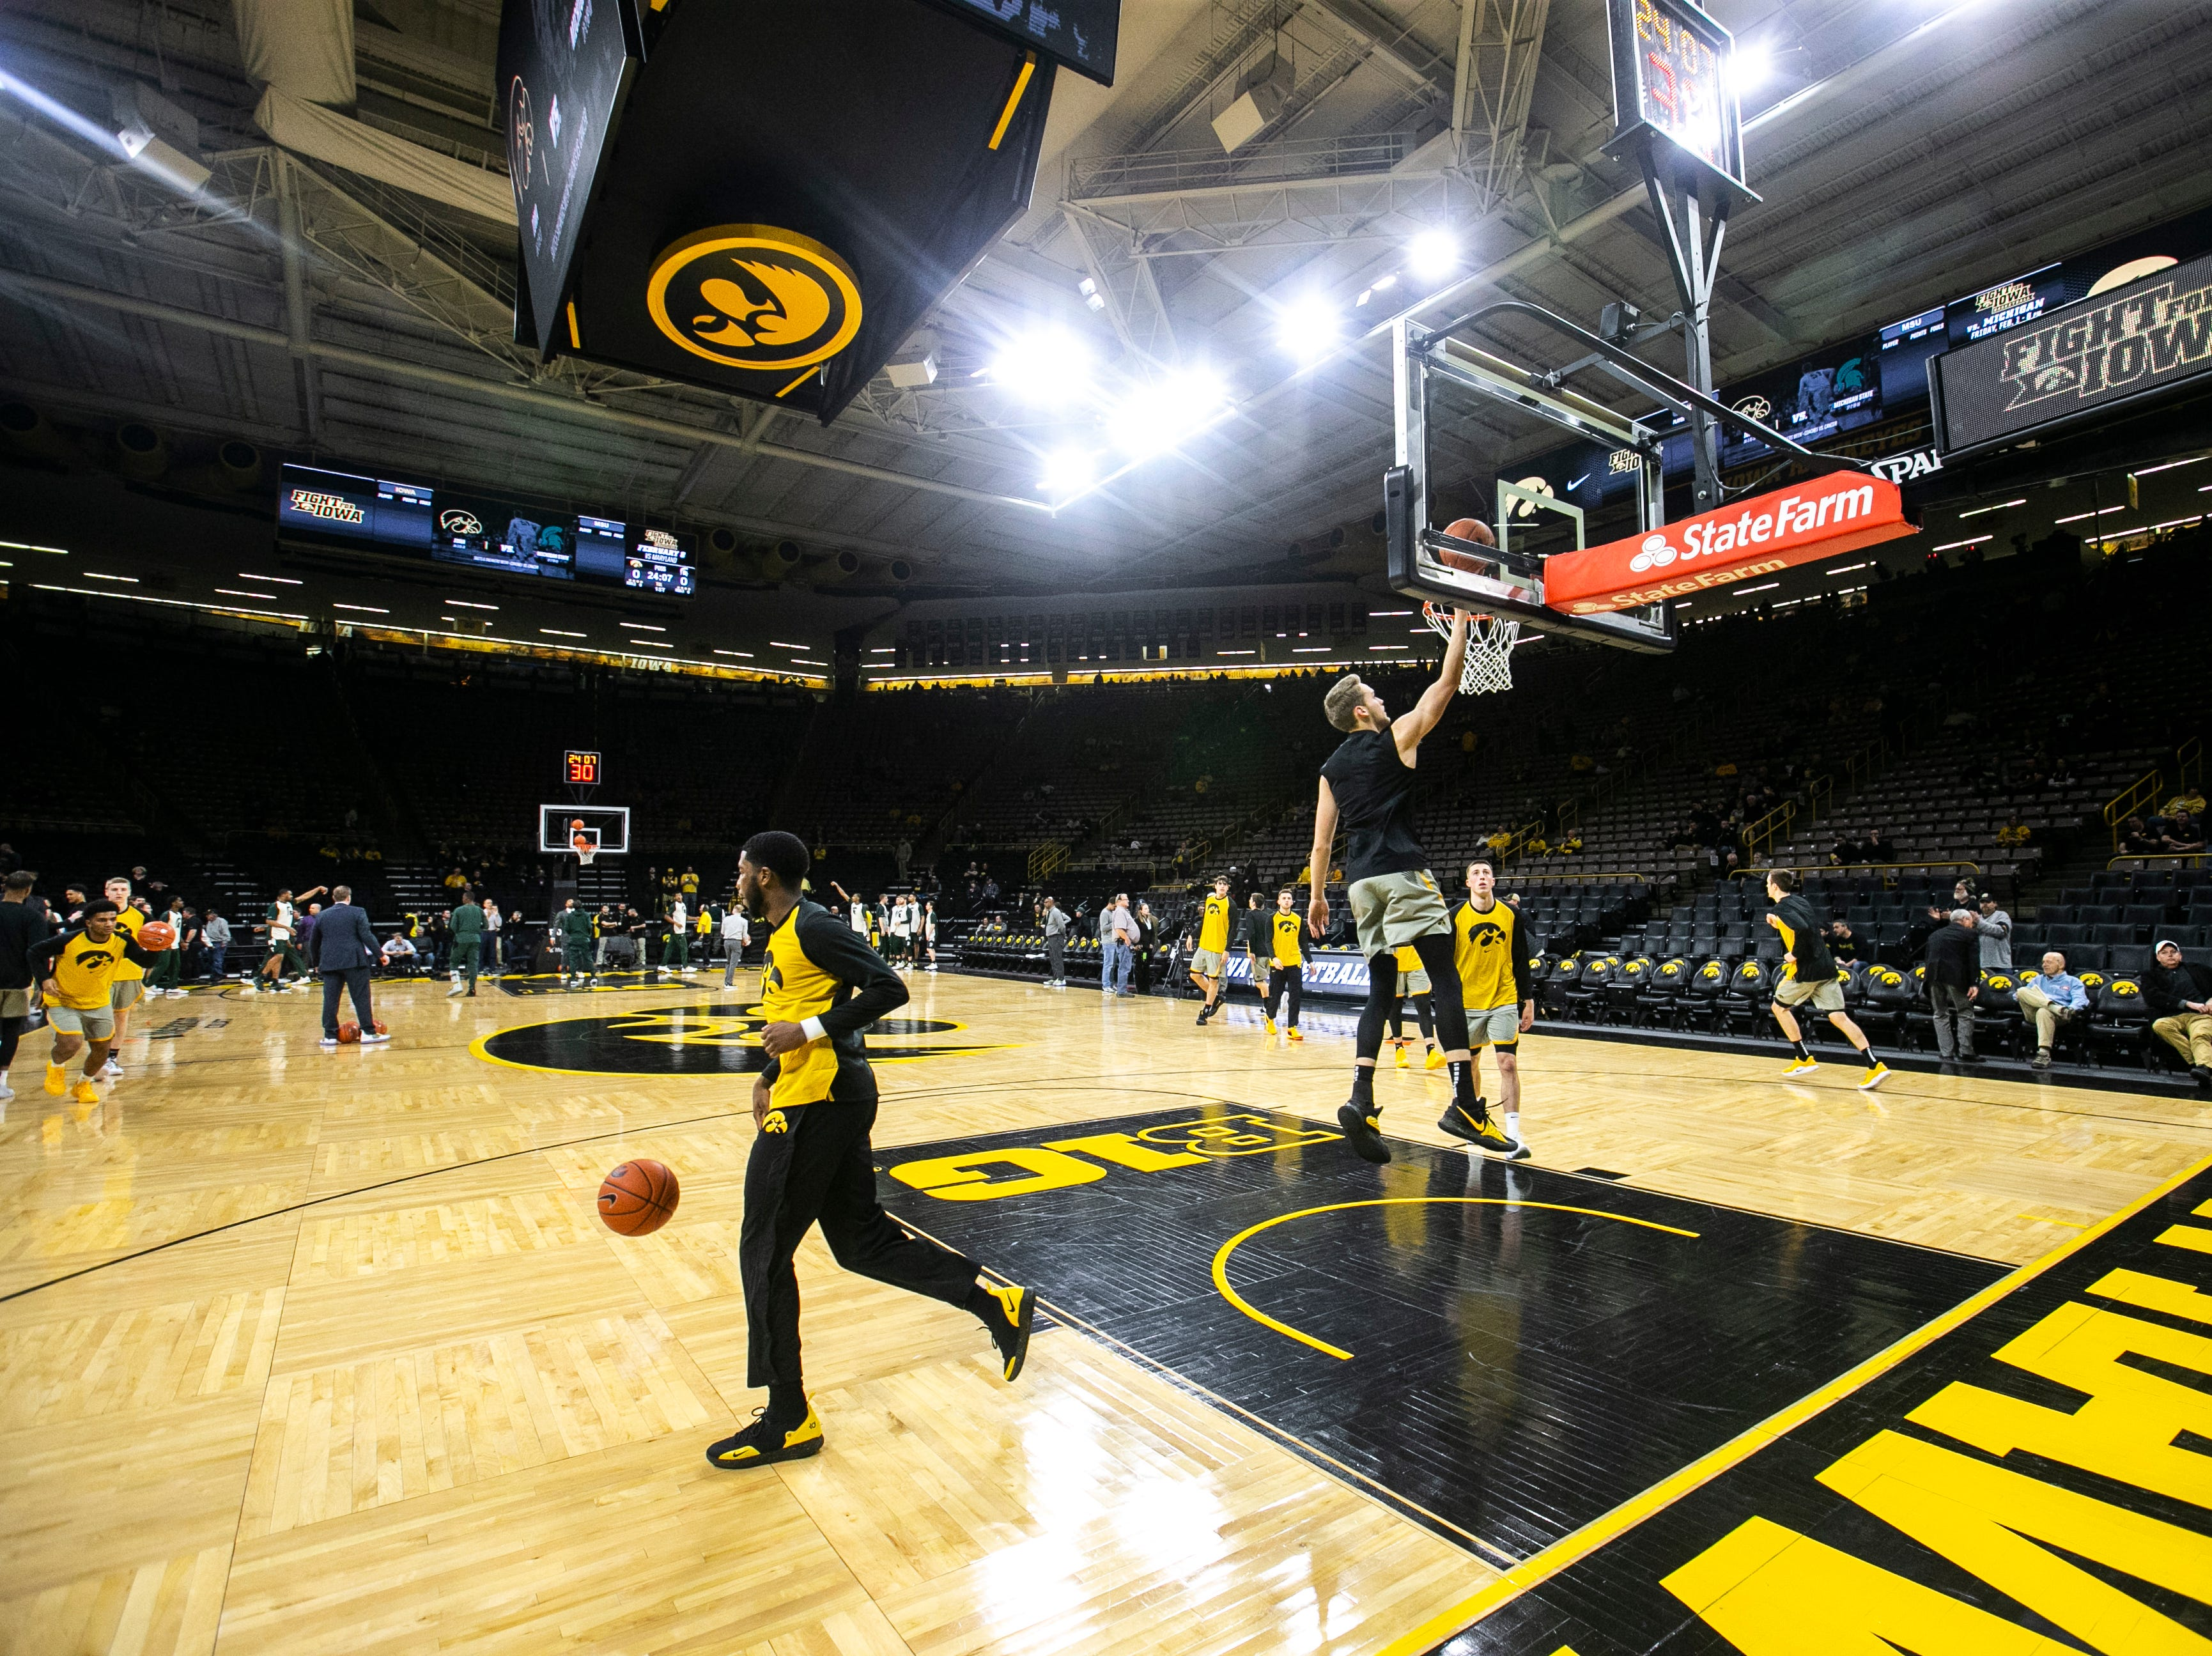 Iowa forward Riley Till makes a layup during warmups during a NCAA Big Ten Conference men's basketball game on Thursday, Jan. 24, 2019, at Carver-Hawkeye Arena in Iowa City, Iowa.